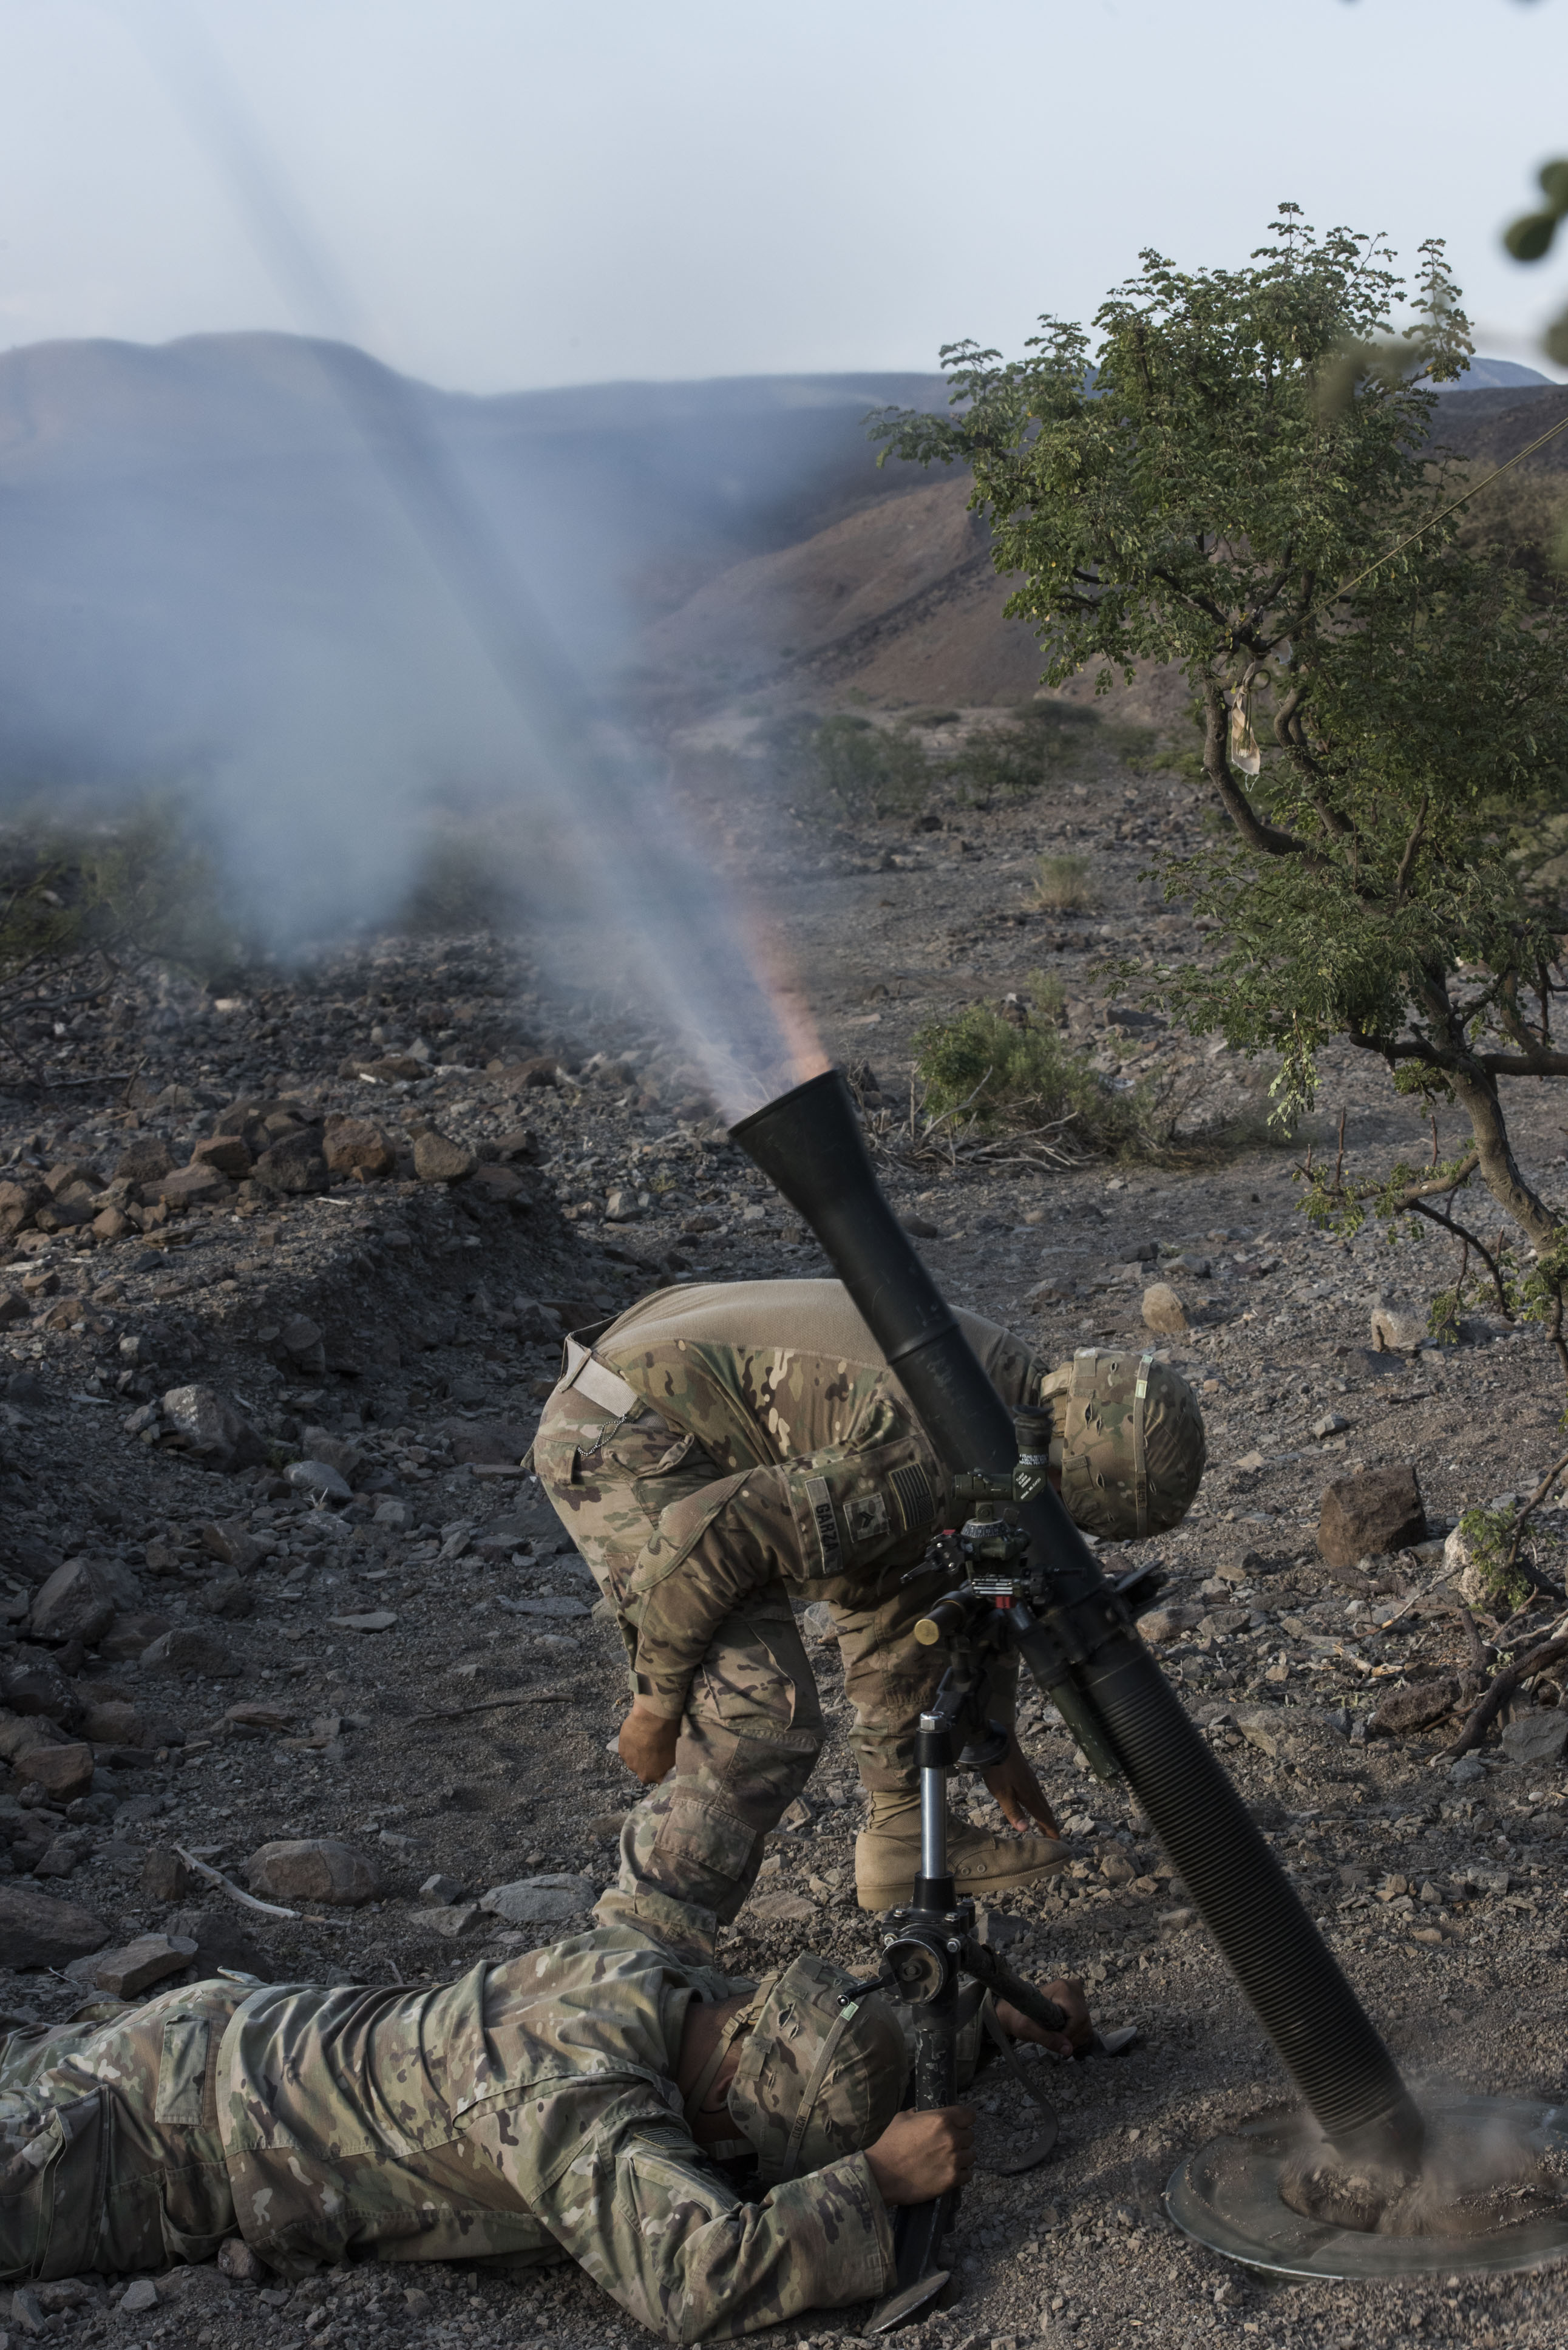 U.S. Army Soldiers with 3rd Battalion, 144th Infantry Regiment, assigned to Task Force Bayonet, Combined Joint Task Force - Horn of Africa, fire a mortar as part of a live-fire combat rehearsal during Alligator Dagger at Arta Range, Djibouti, Dec. 17, 2017. Alligator Dagger, led by Naval Amphibious Force, Task Force 51/5th Marine Expeditionary Brigade, is a dedicated, bilateral combat rehearsal that combines U.S. and French forces to practice, rehearse and exercise integrated capabilities available to U.S. Central Command both afloat and ashore. (U.S. Air Force photo by Staff Sgt. Allyson L. Manners)